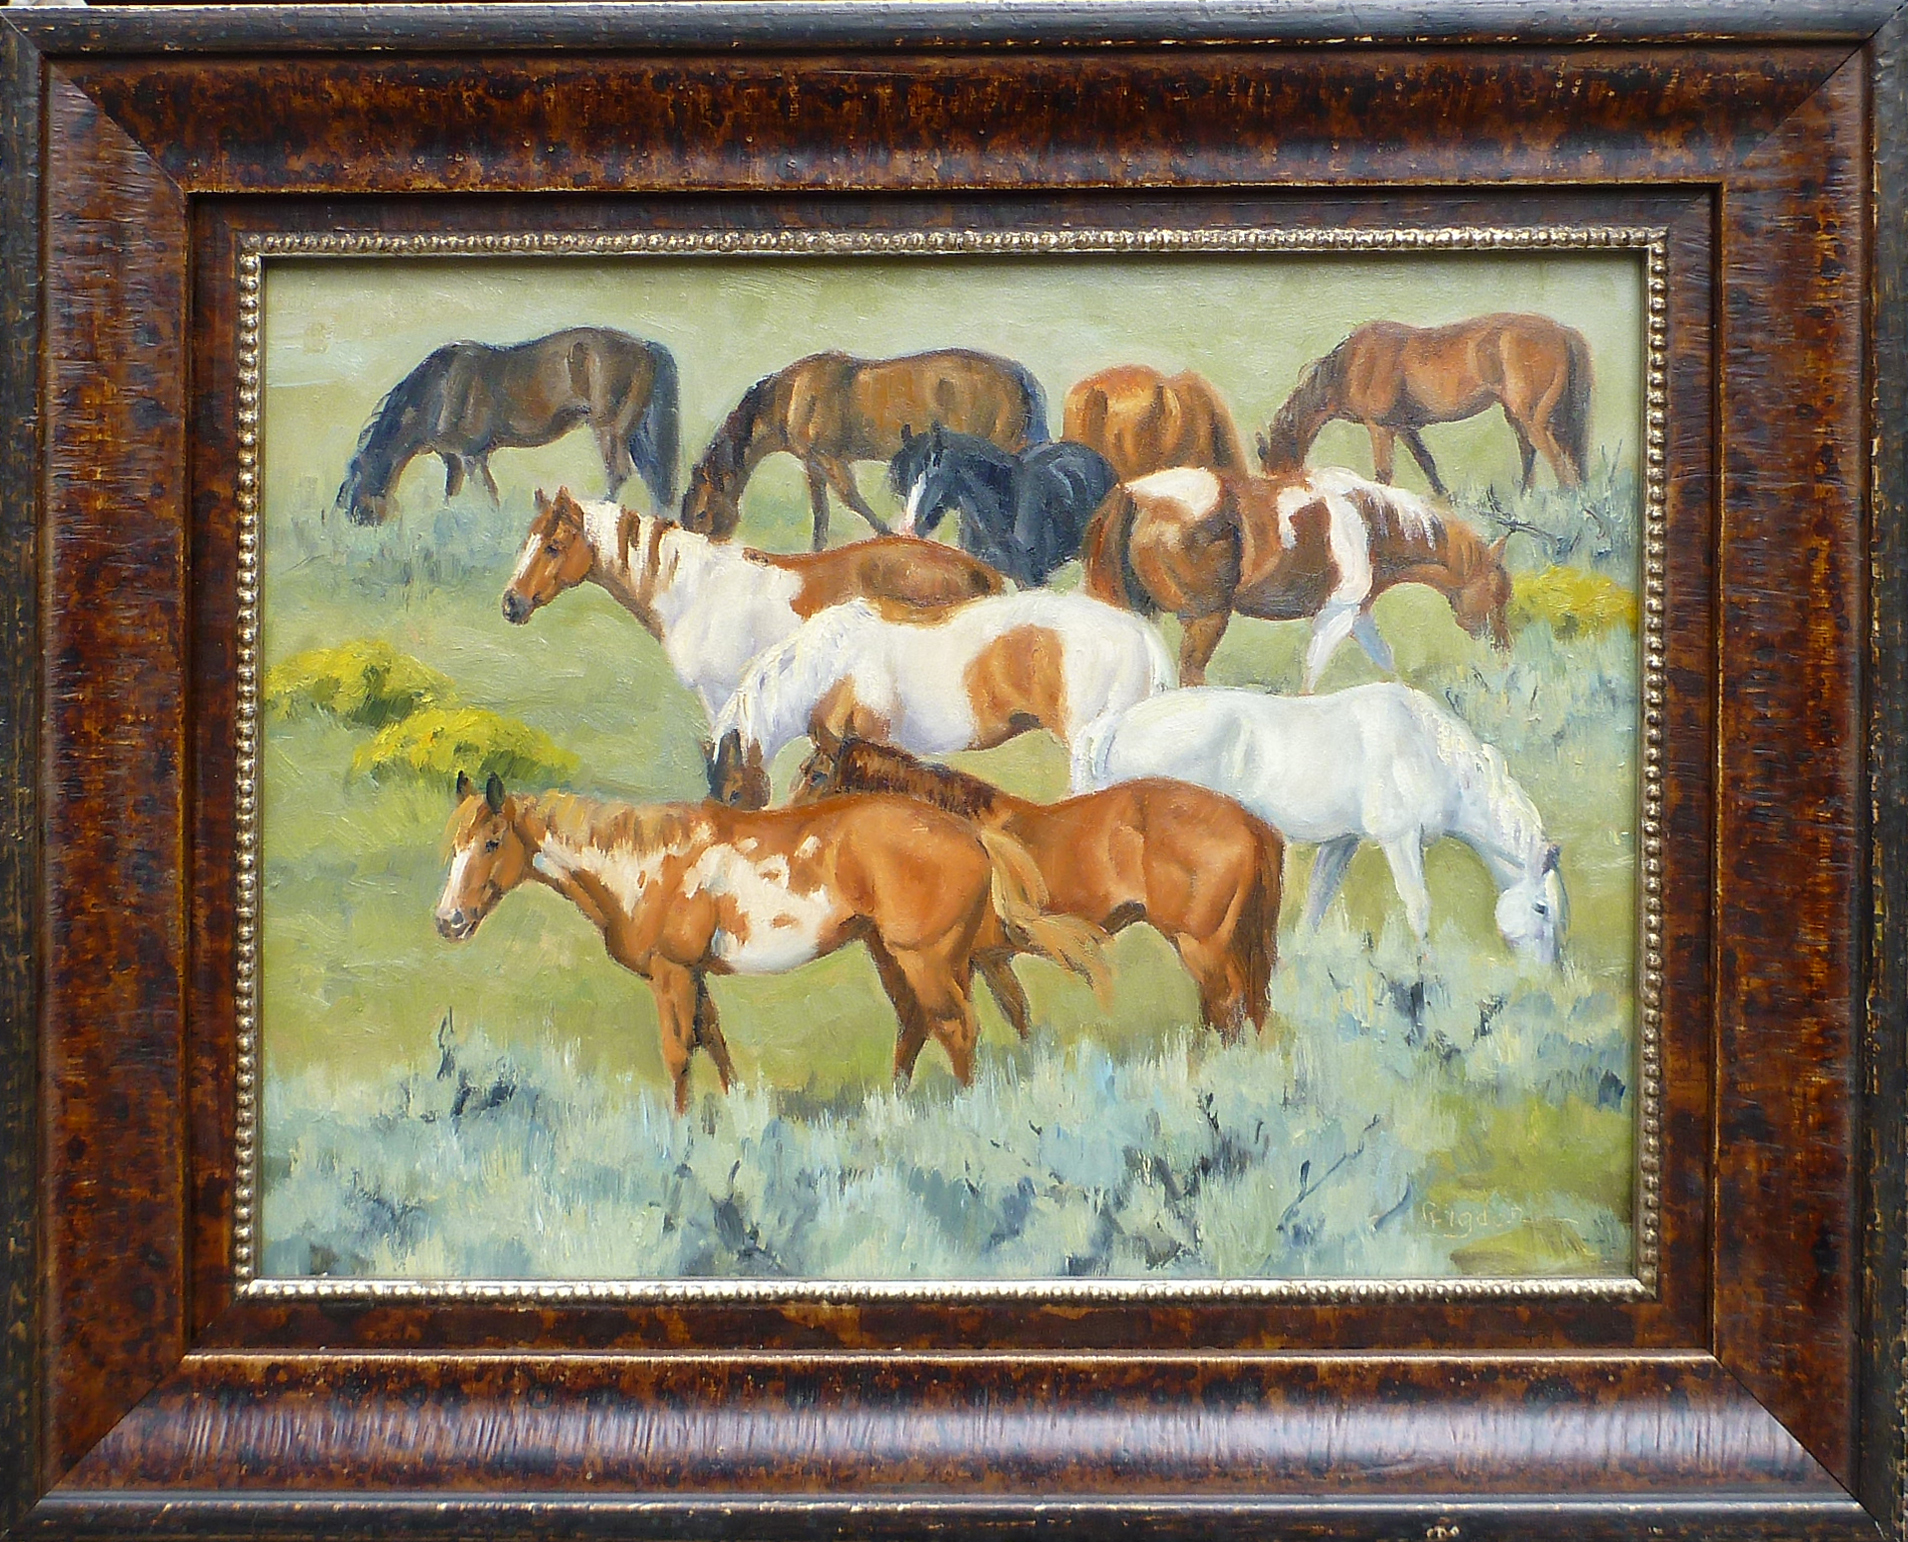 Sagebrush Tapestry by Ms. Cynthia Rigden - Masterpiece Online